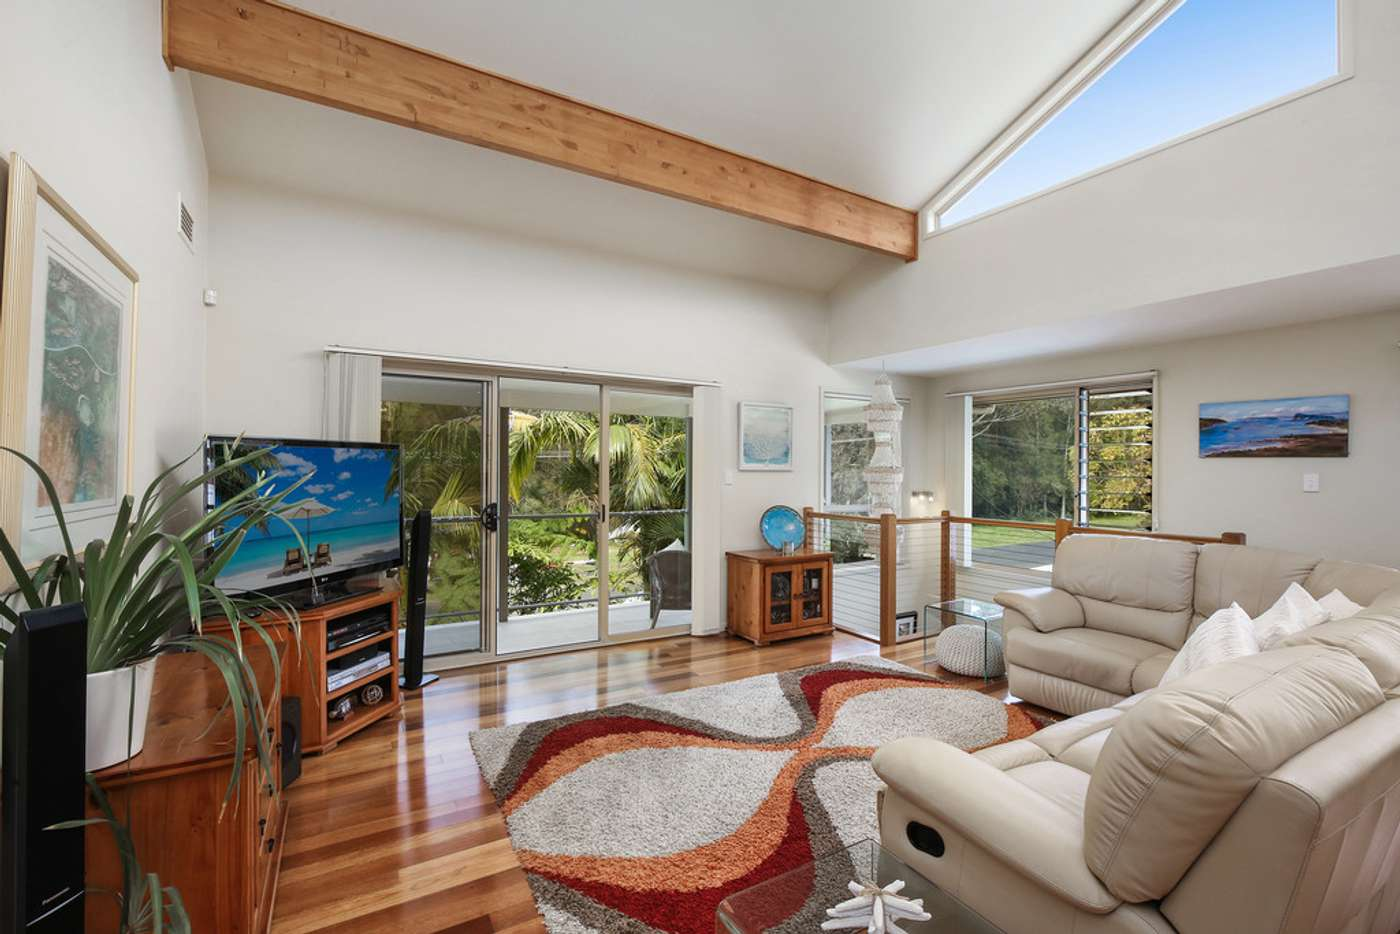 Fifth view of Homely house listing, 48 Kendall Road, Empire Bay NSW 2257